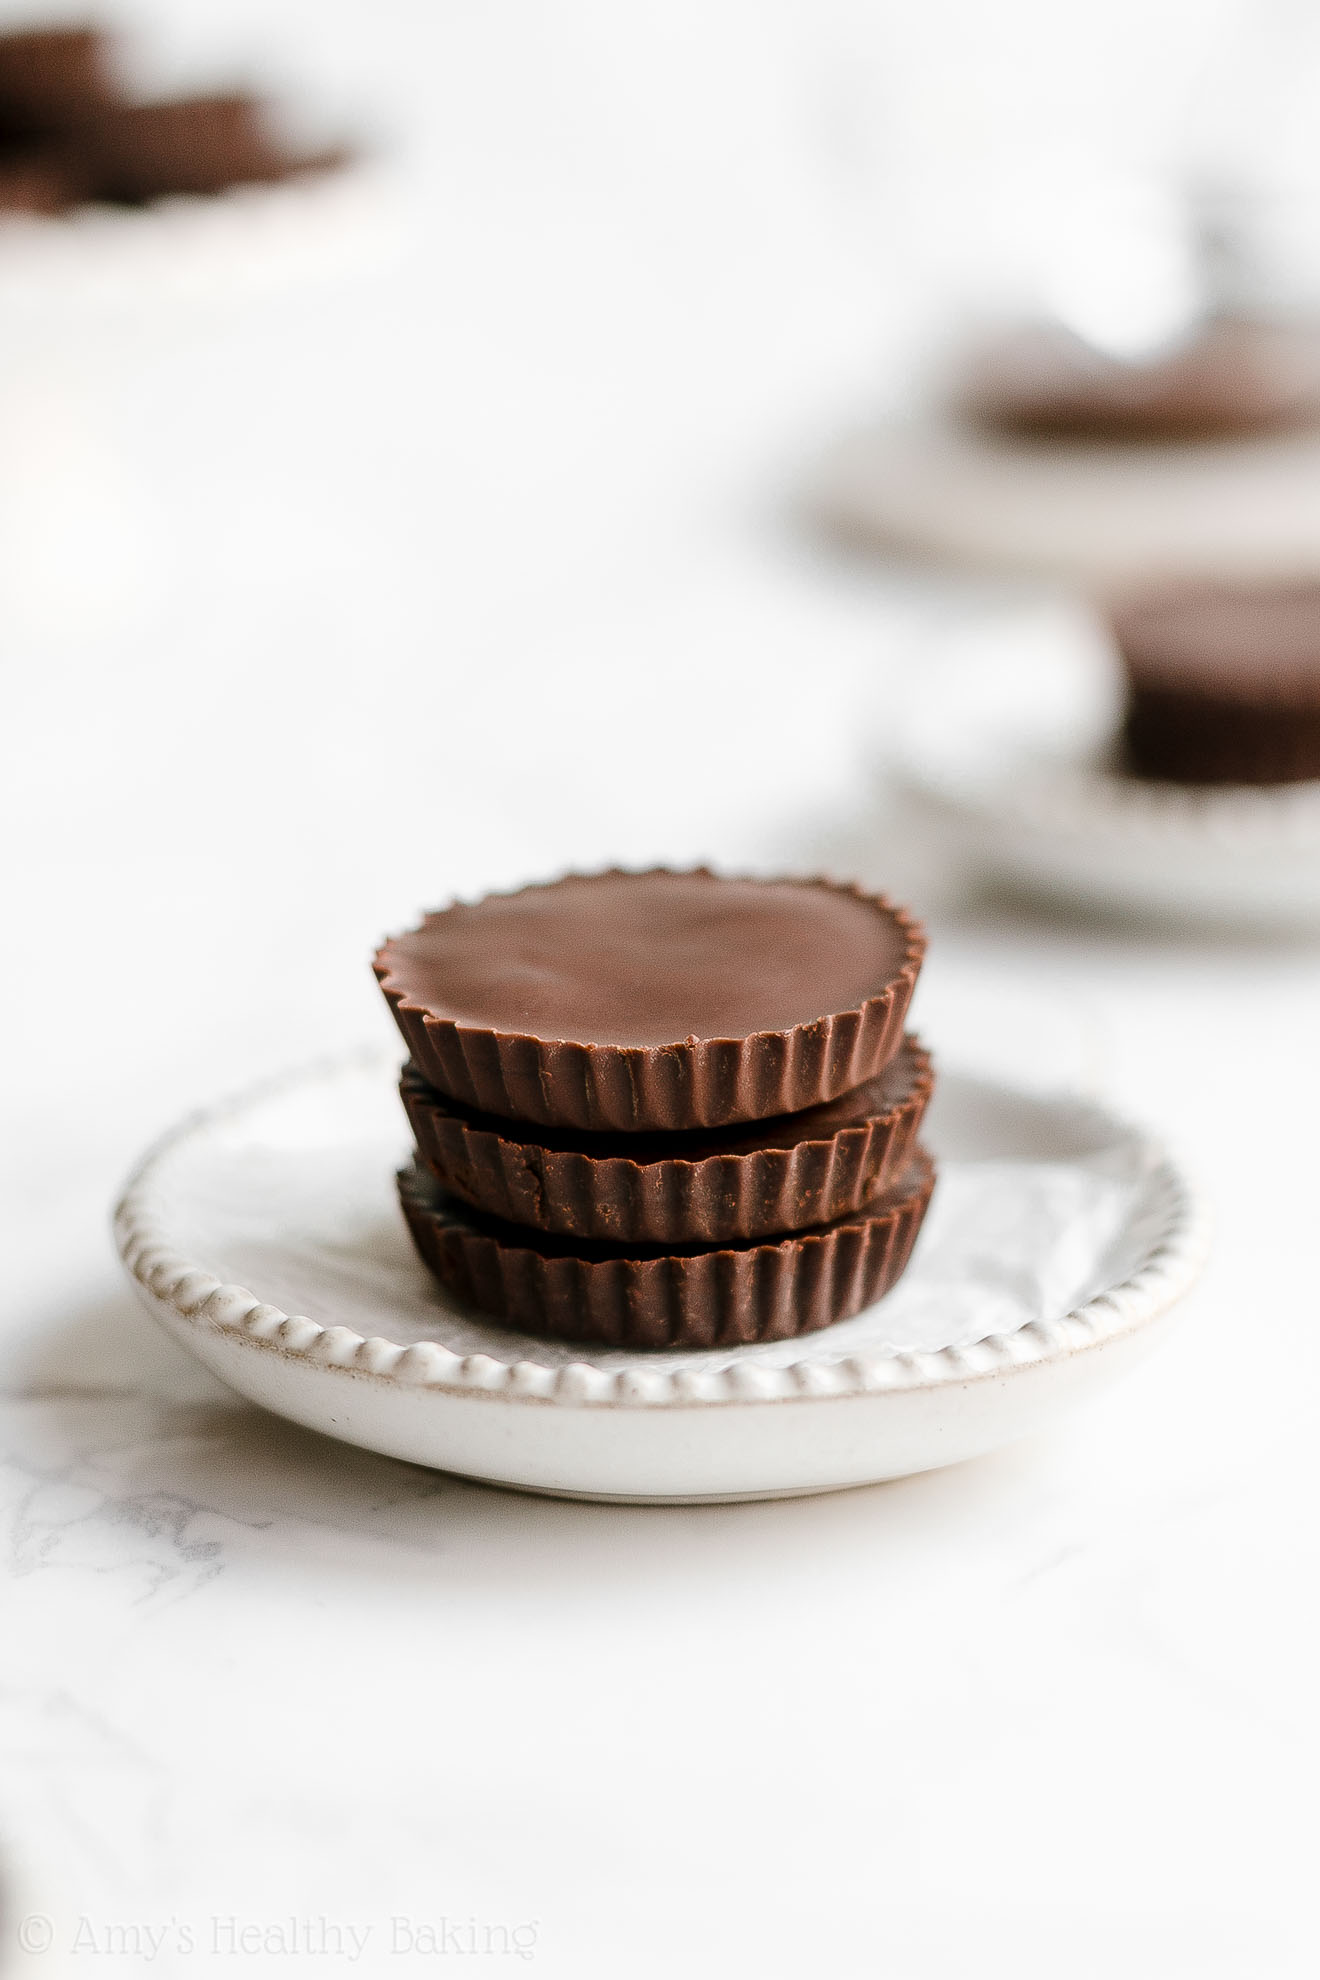 Easy Healthy Vegan Dairy Free Double Dark Chocolate Peanut Butter Cups